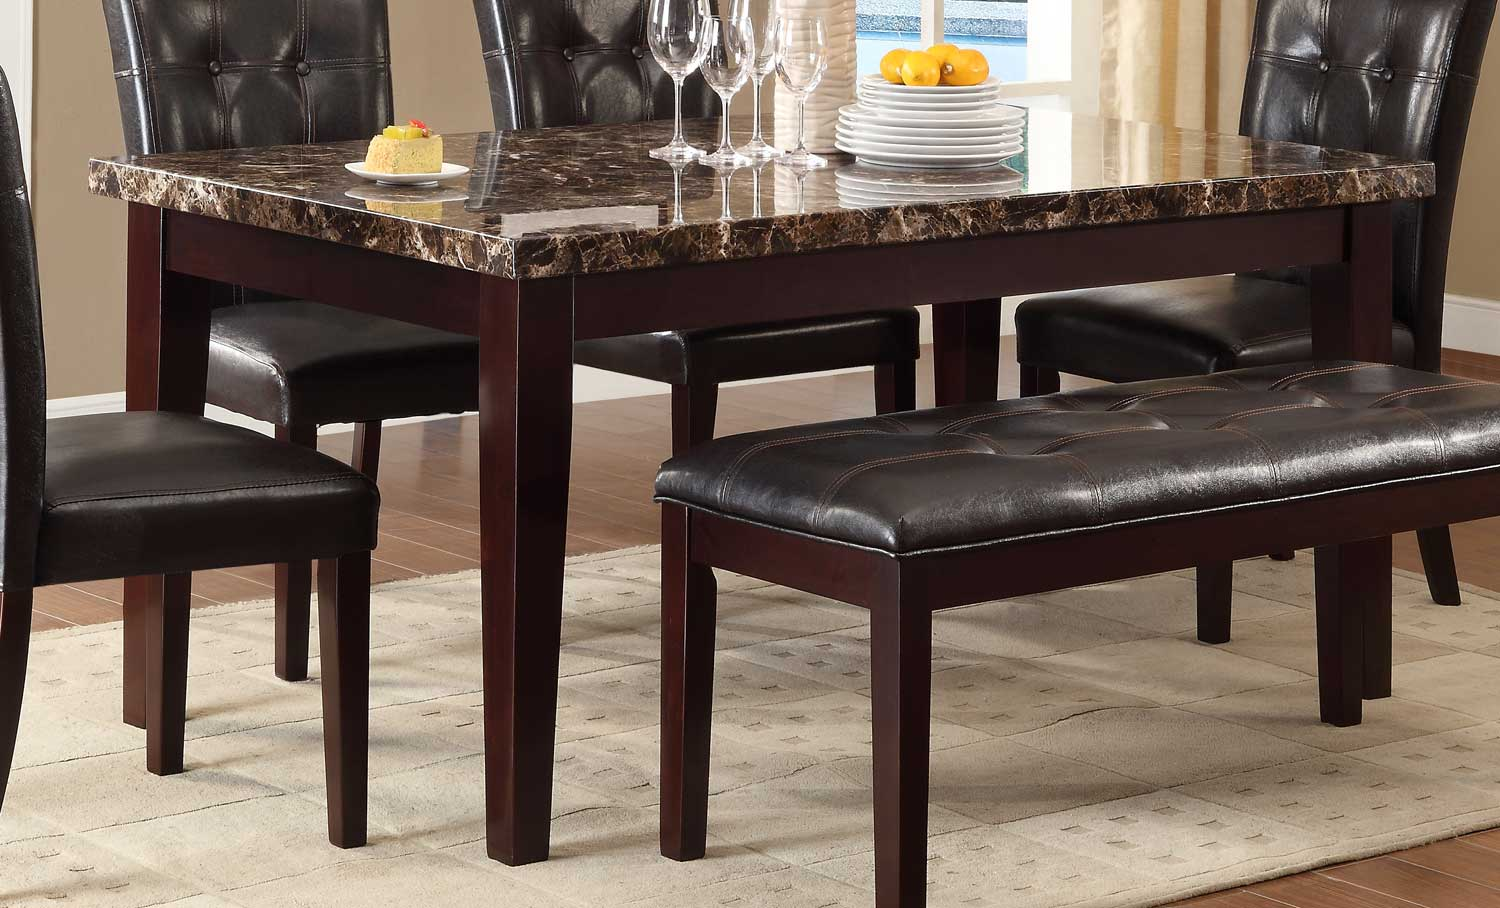 Homelegance Teague Faux Marble Dining Table - Espresso & Homelegance Teague Faux Marble Dining Table - Espresso 2544-64 ...